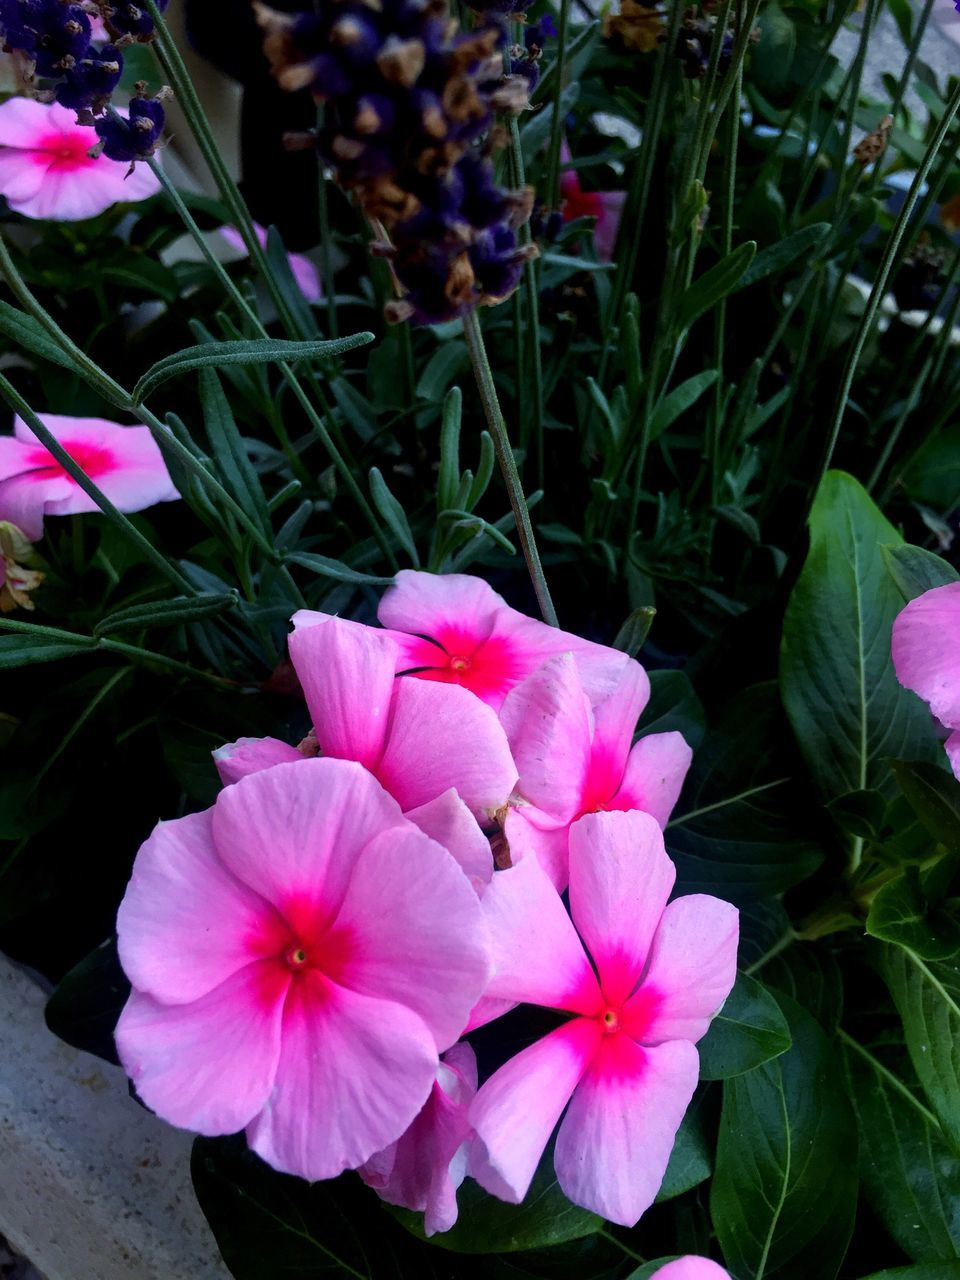 flower, petal, growth, flower head, plant, beauty in nature, no people, nature, fragility, blooming, pink color, outdoors, day, close-up, freshness, periwinkle, petunia